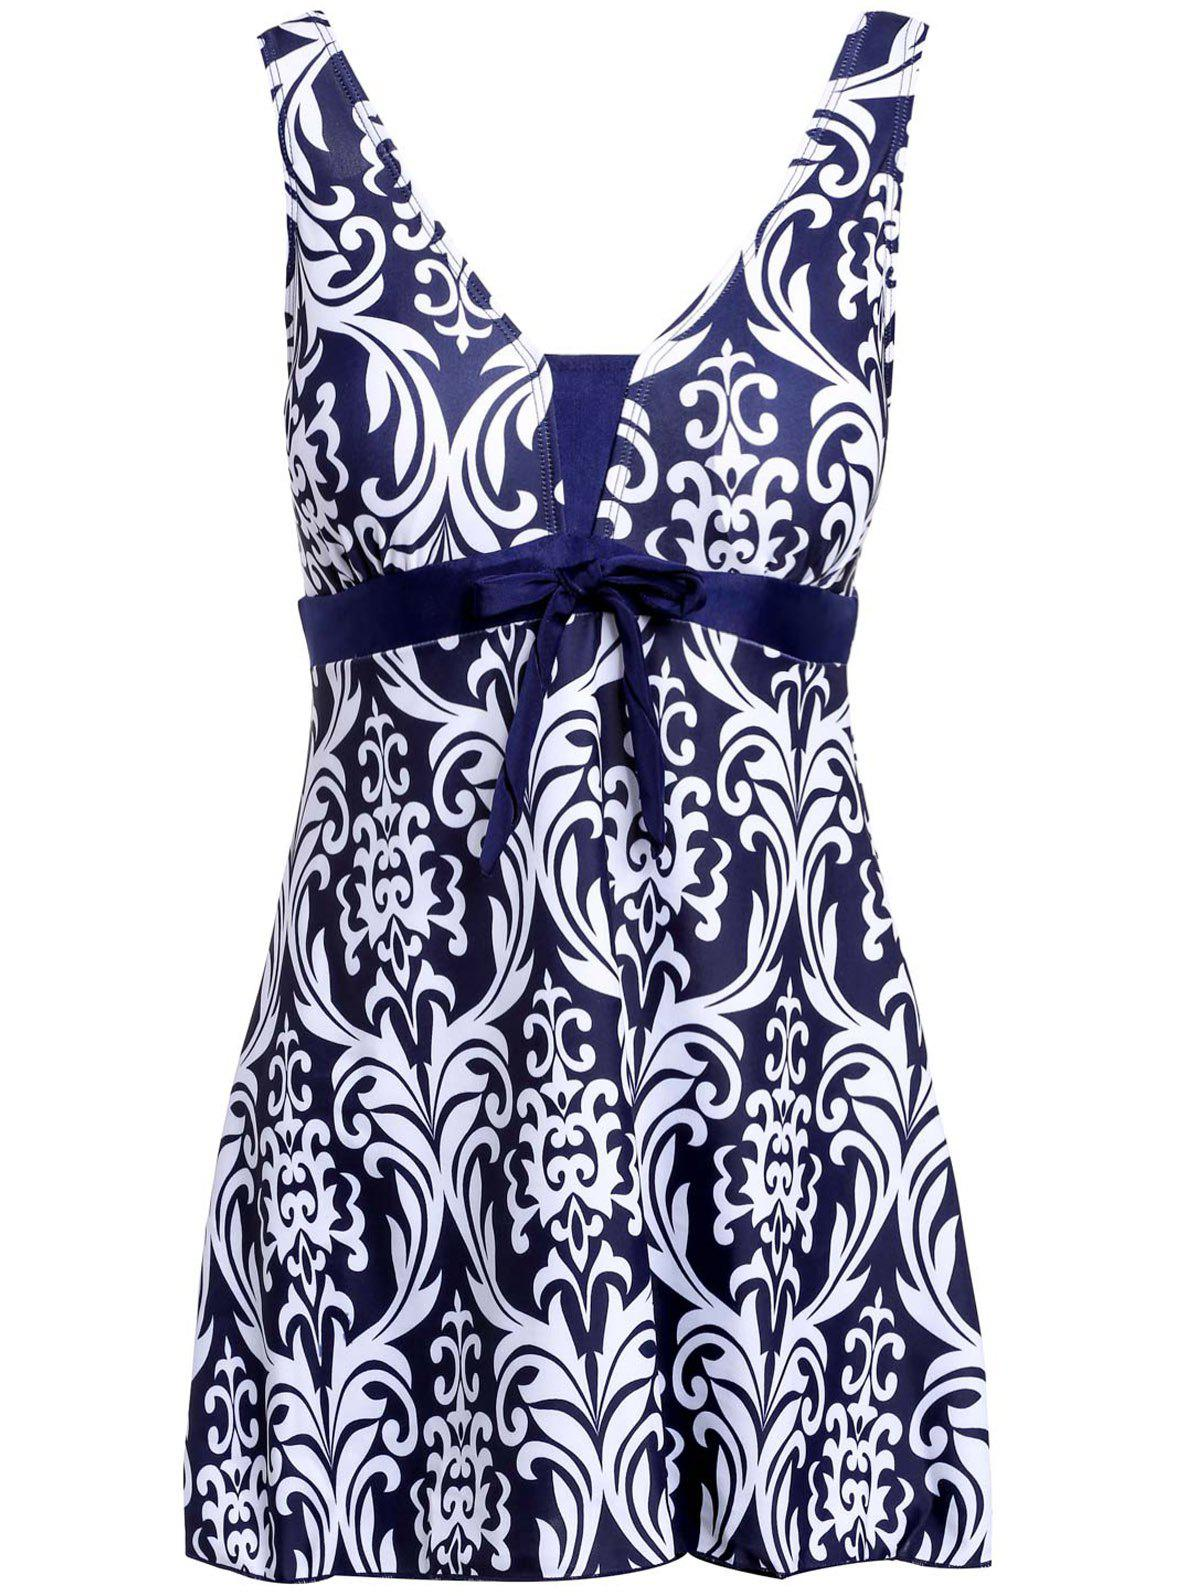 Ethnic Style Women's V-Neck Bowknot Embellished Printed One-Piece Swimsuit - WHITE XL